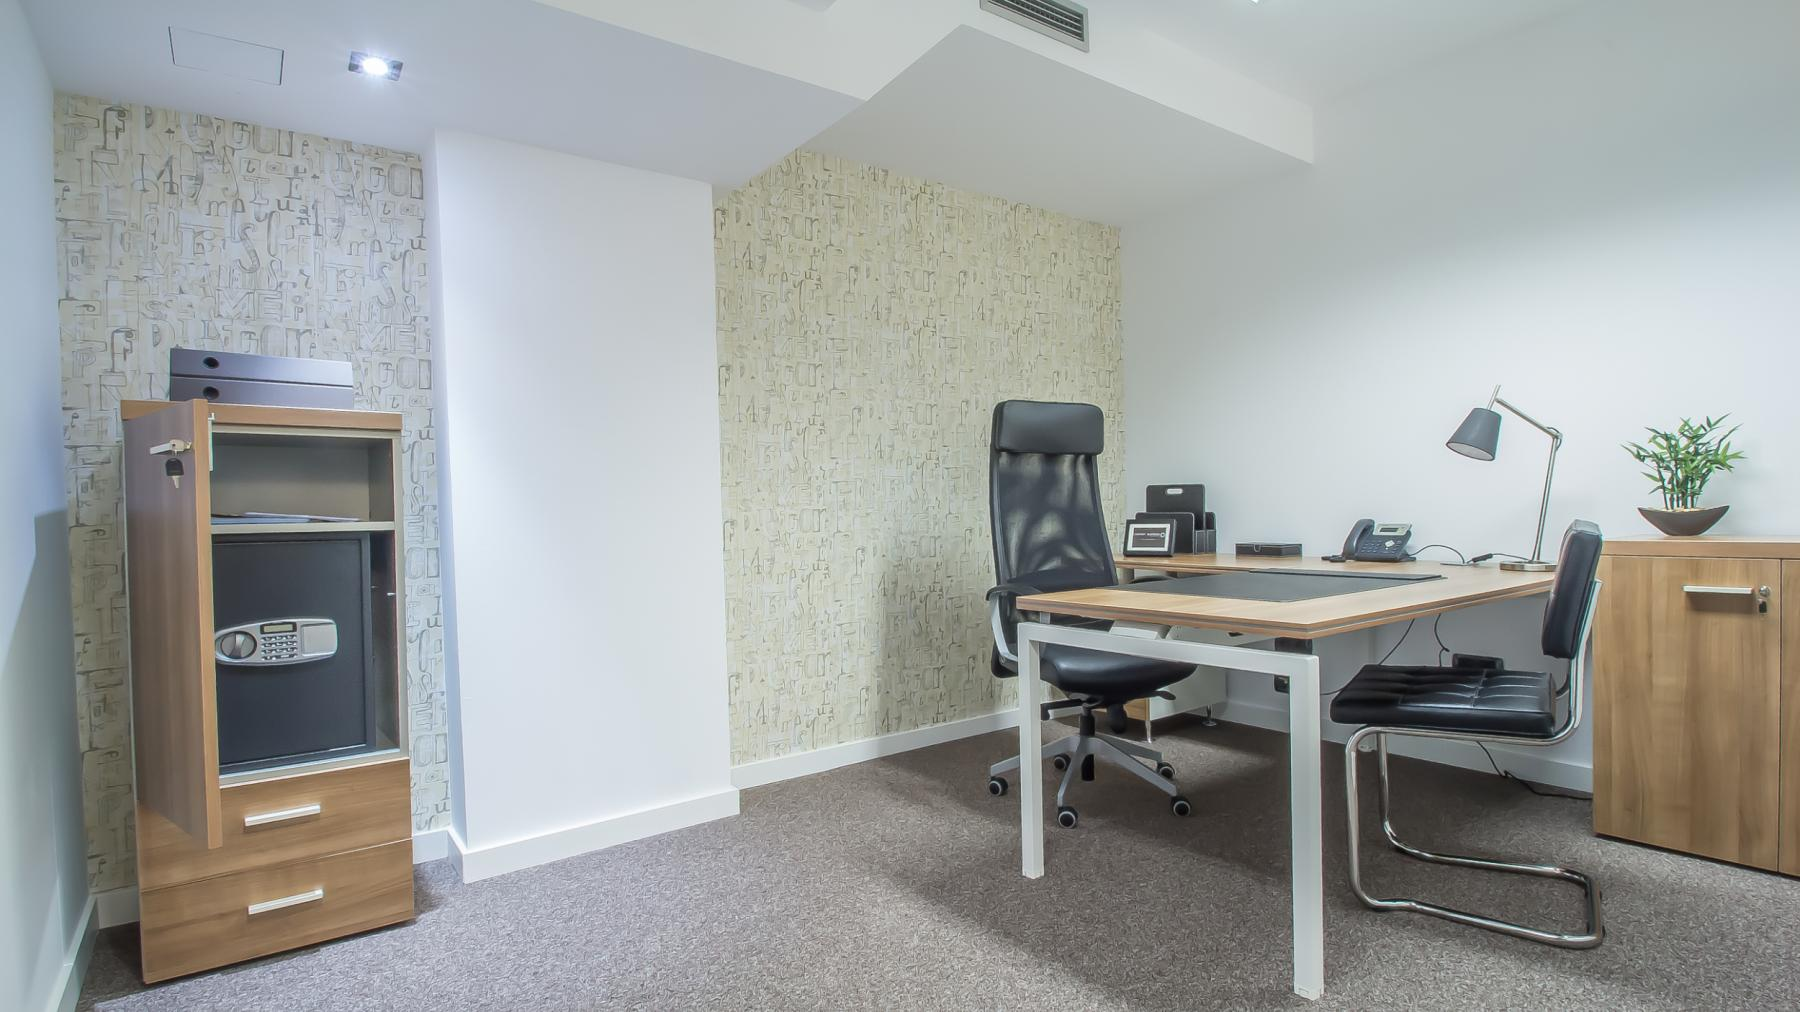 Office to rent at Carrer d'Aribau 161